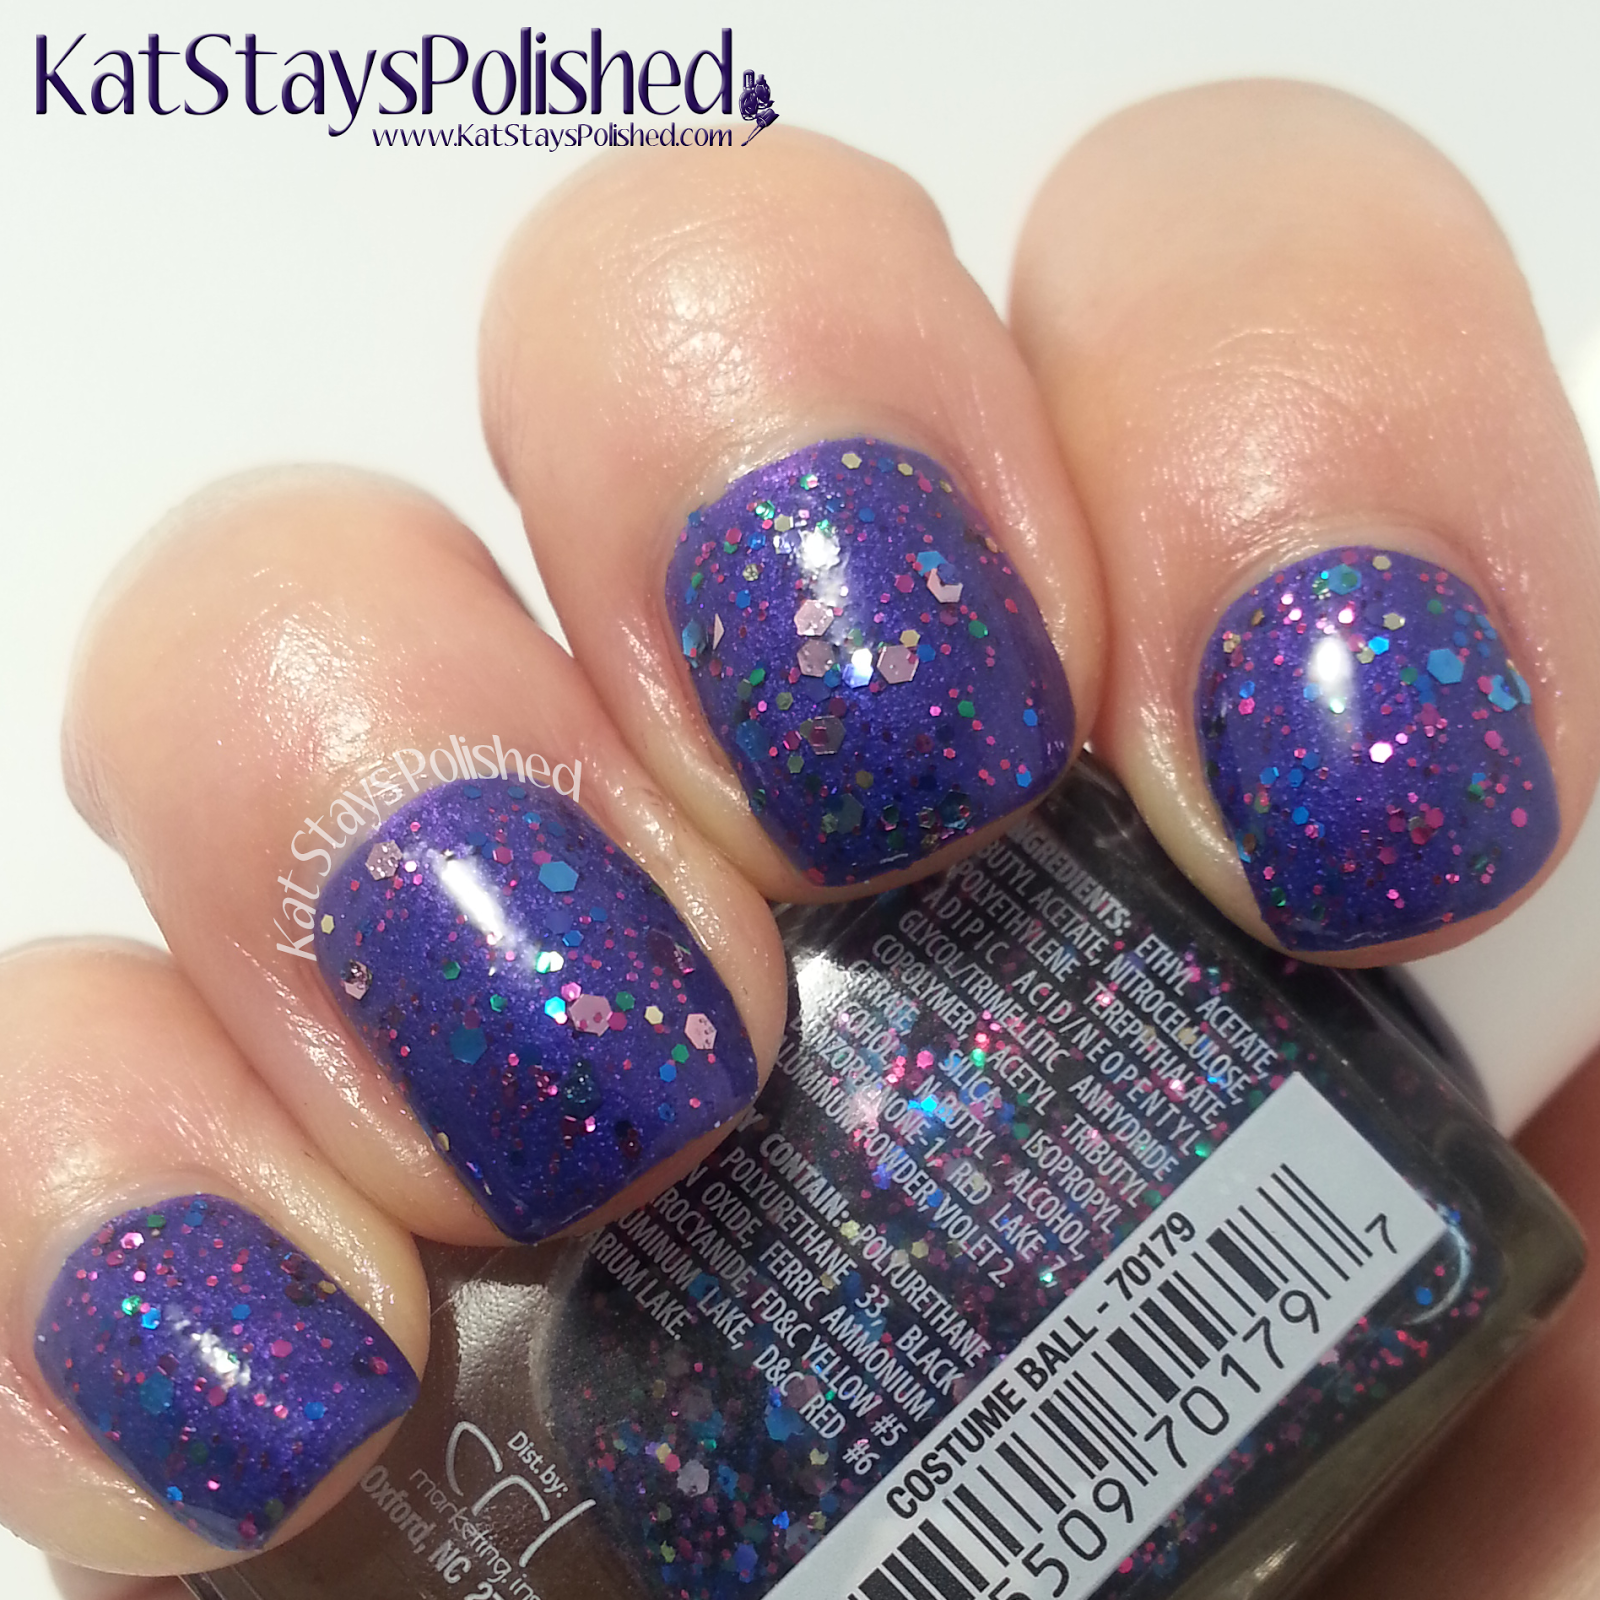 JulieG Mardi Gras Collection - Costume Ball | Kat Stays Polished